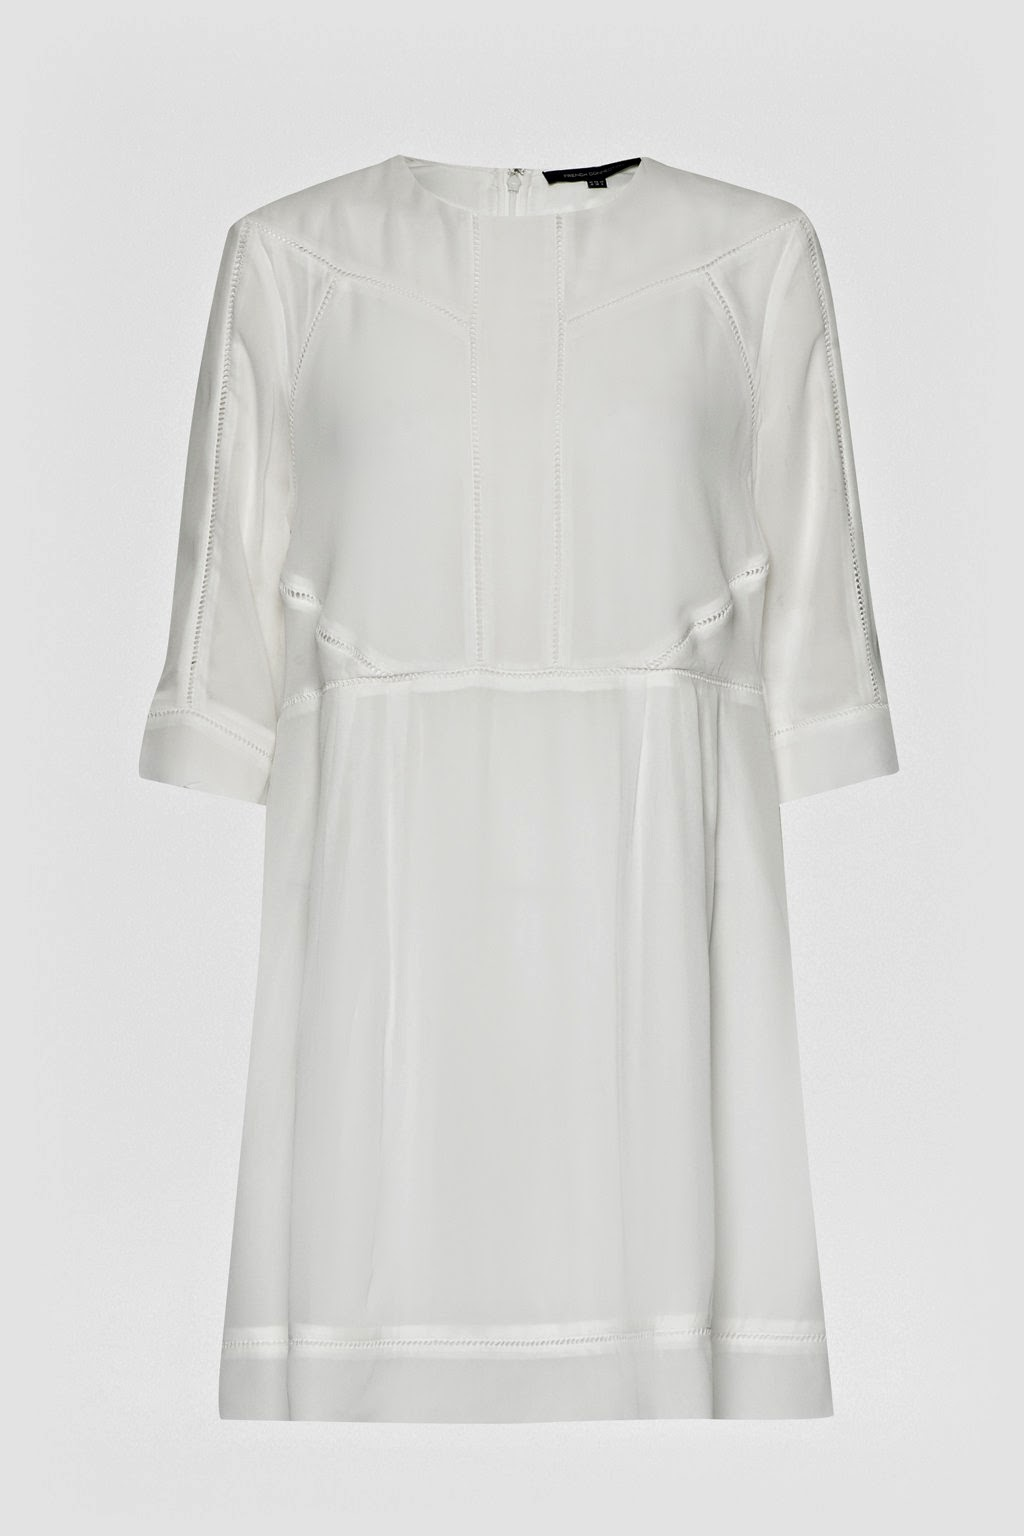 french connection white midi dress,